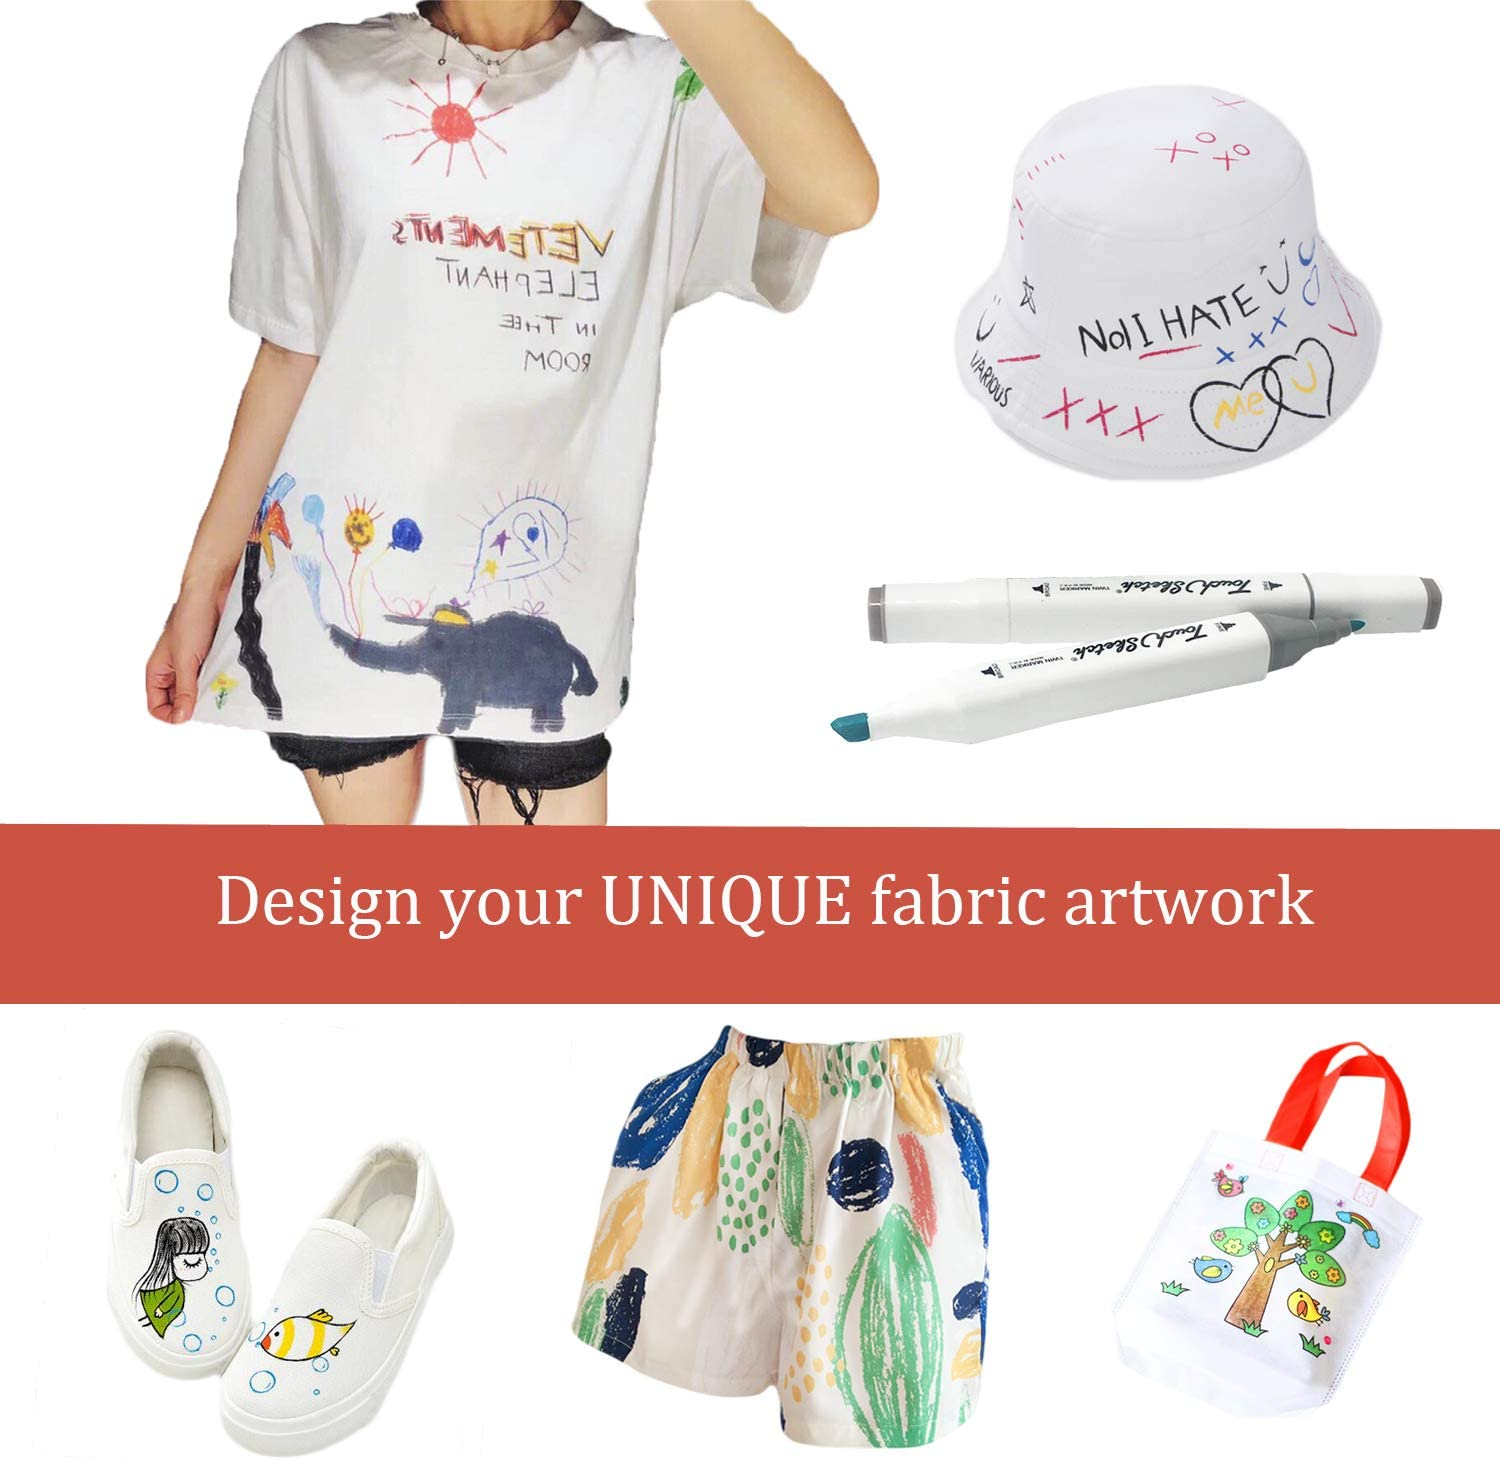 Bags Dual Tip Fabric Paint Art Markers for DIY Clothes Shoes T-Shirt Fabric Markers Pens Permanent 30 Colors Canvas Child Safe/&Non Toxic